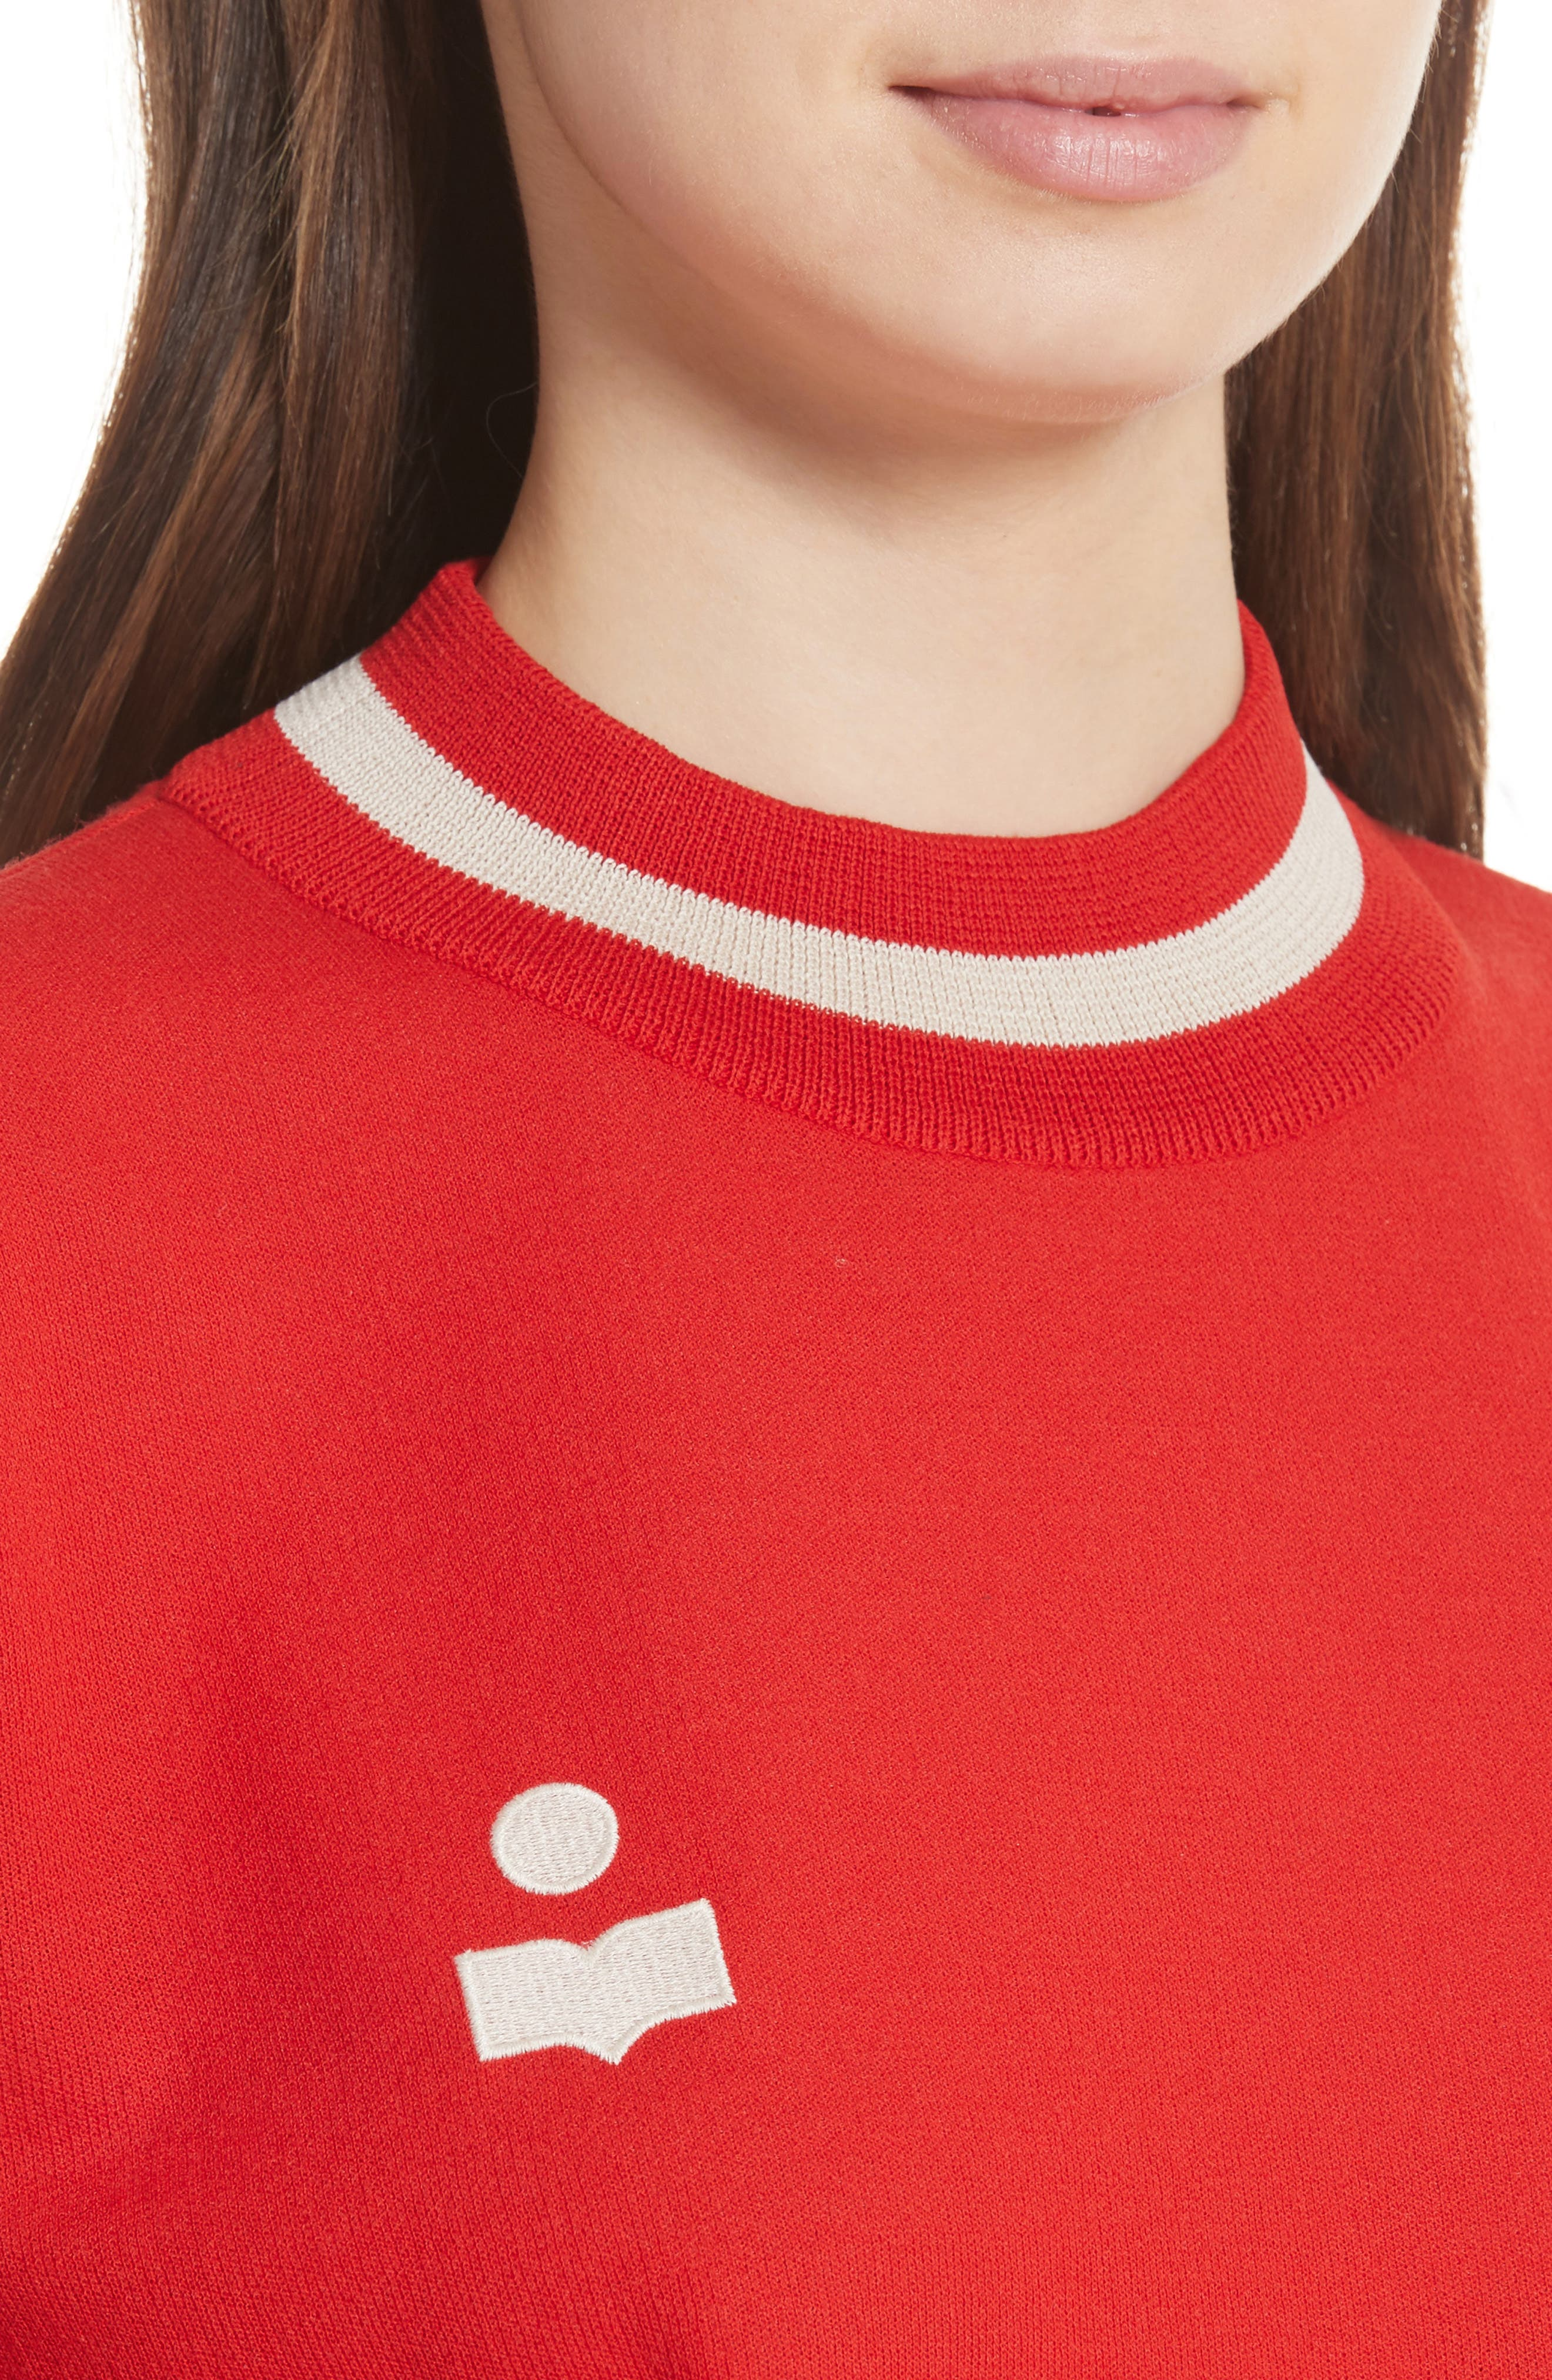 Dayton Crop Sweatshirt,                             Alternate thumbnail 4, color,                             600